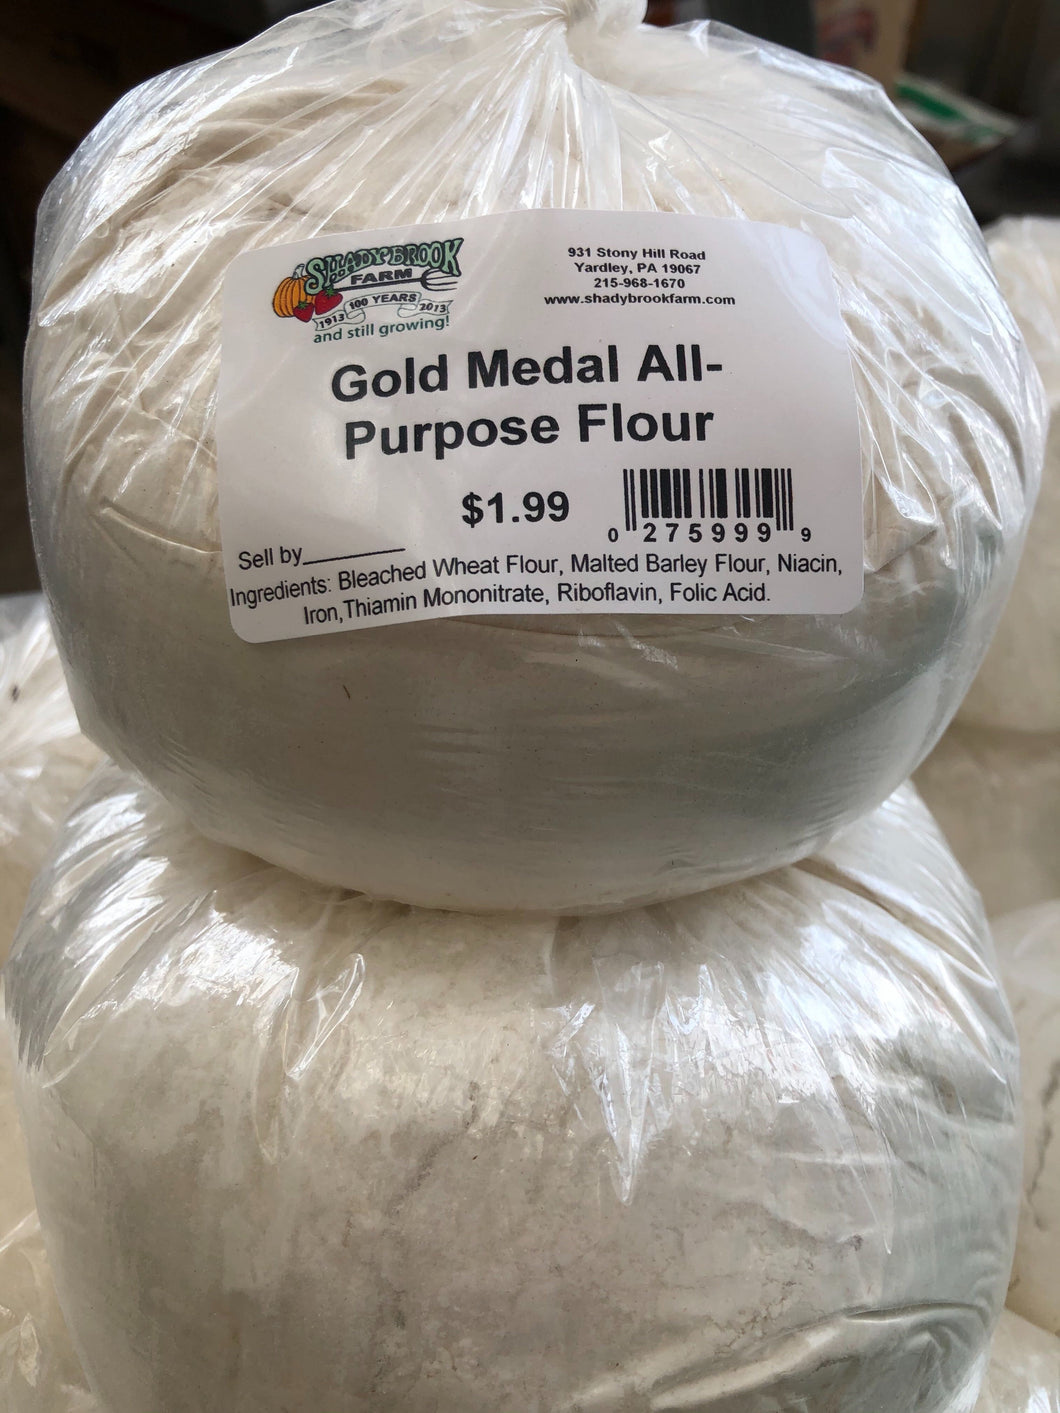 Gold Medal All Purpose Flour 3 lb bag